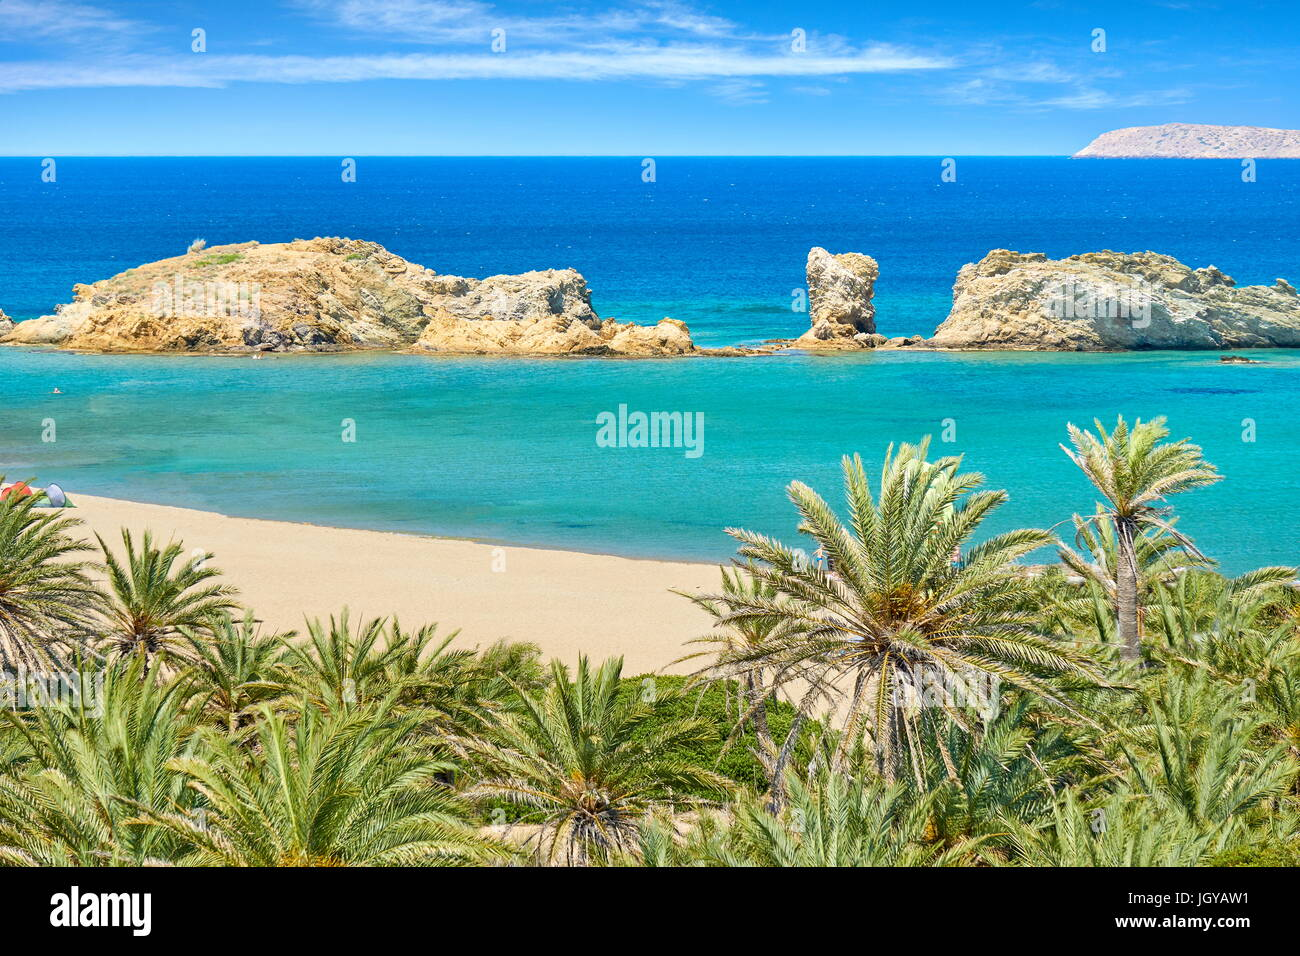 Vai Beach, Crete Island, Greece Stock Photo